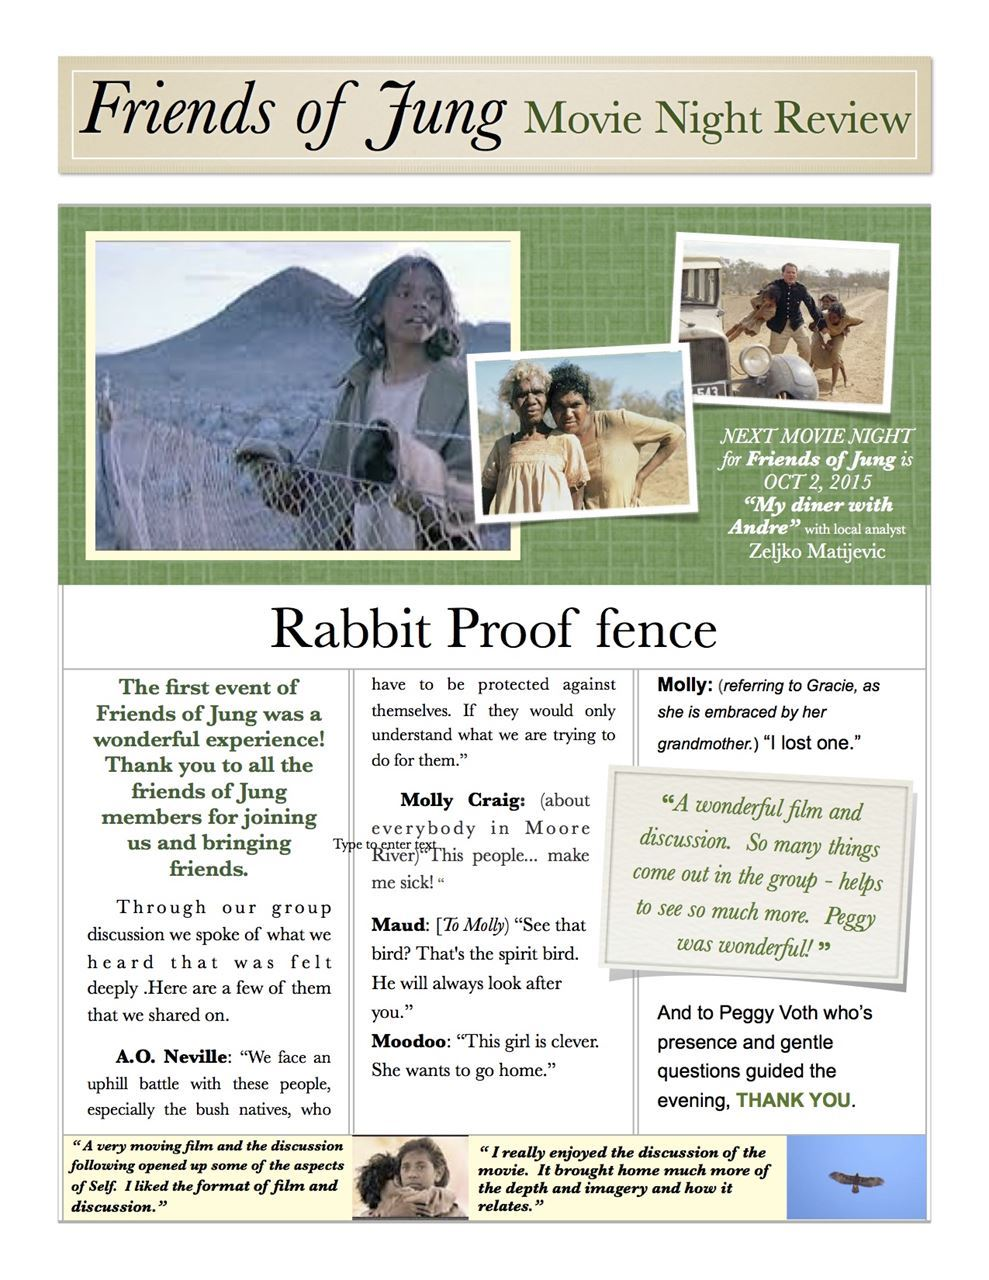 005 Essay Example Rabbit Proof Fence Review Top Film Full